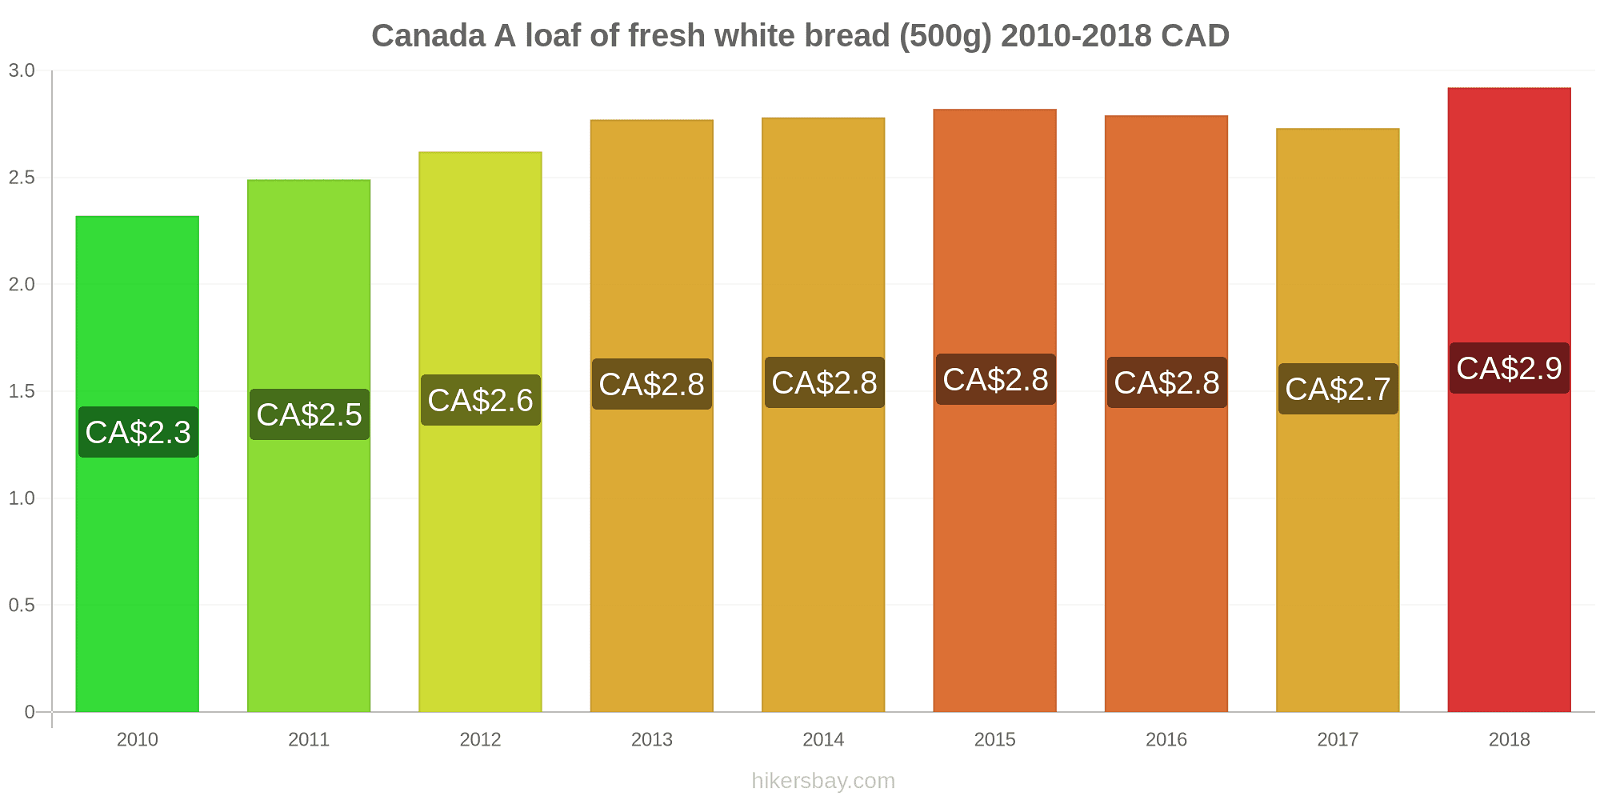 Canada price changes A loaf of fresh white bread (500g) hikersbay.com